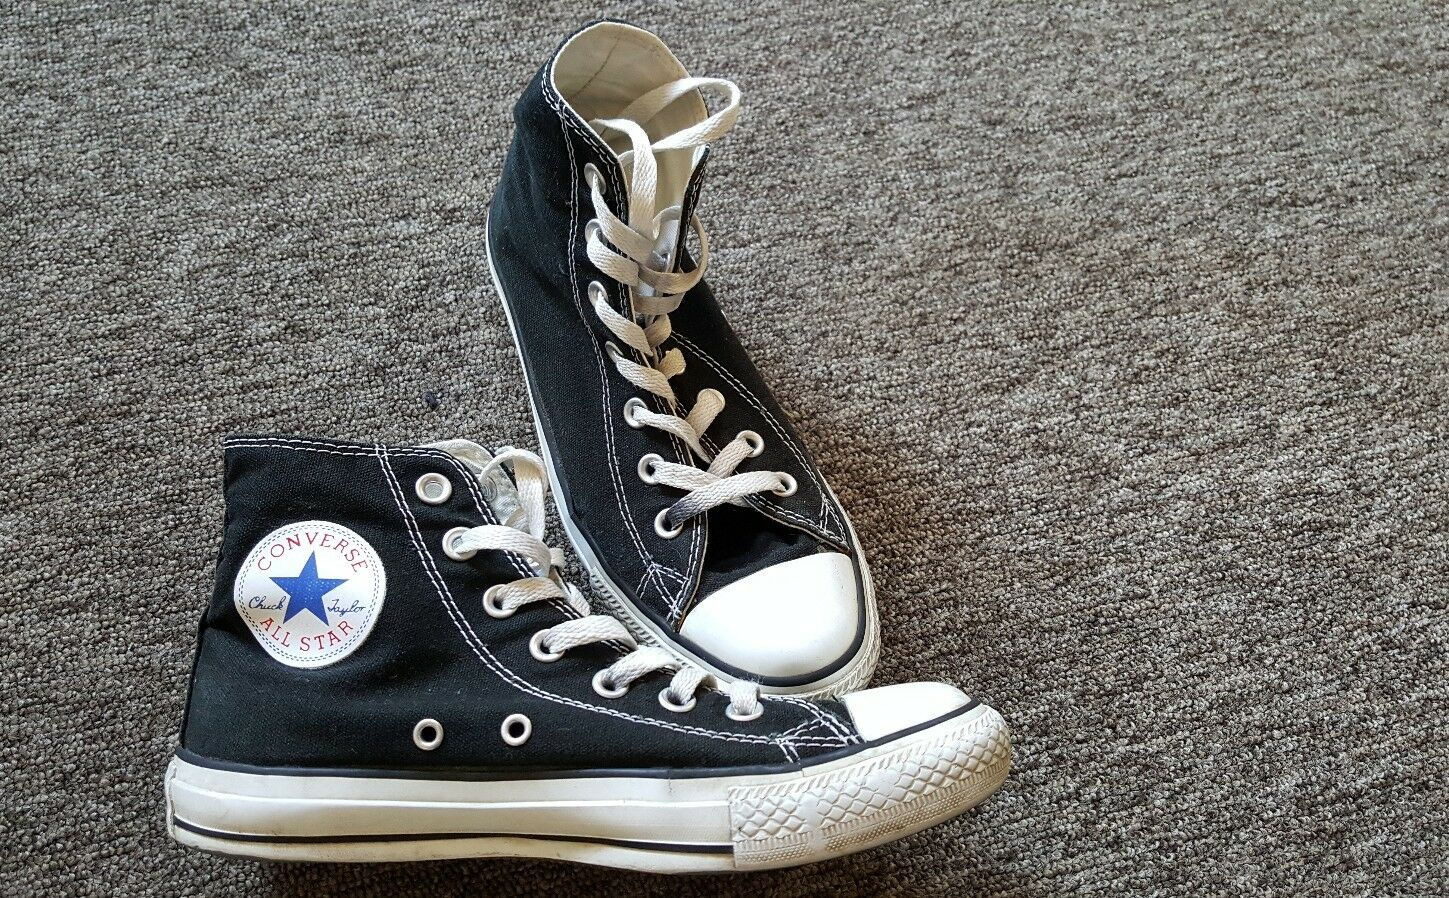 converse chucks chuck taylor damen schuhe schwarz gr 38. Black Bedroom Furniture Sets. Home Design Ideas